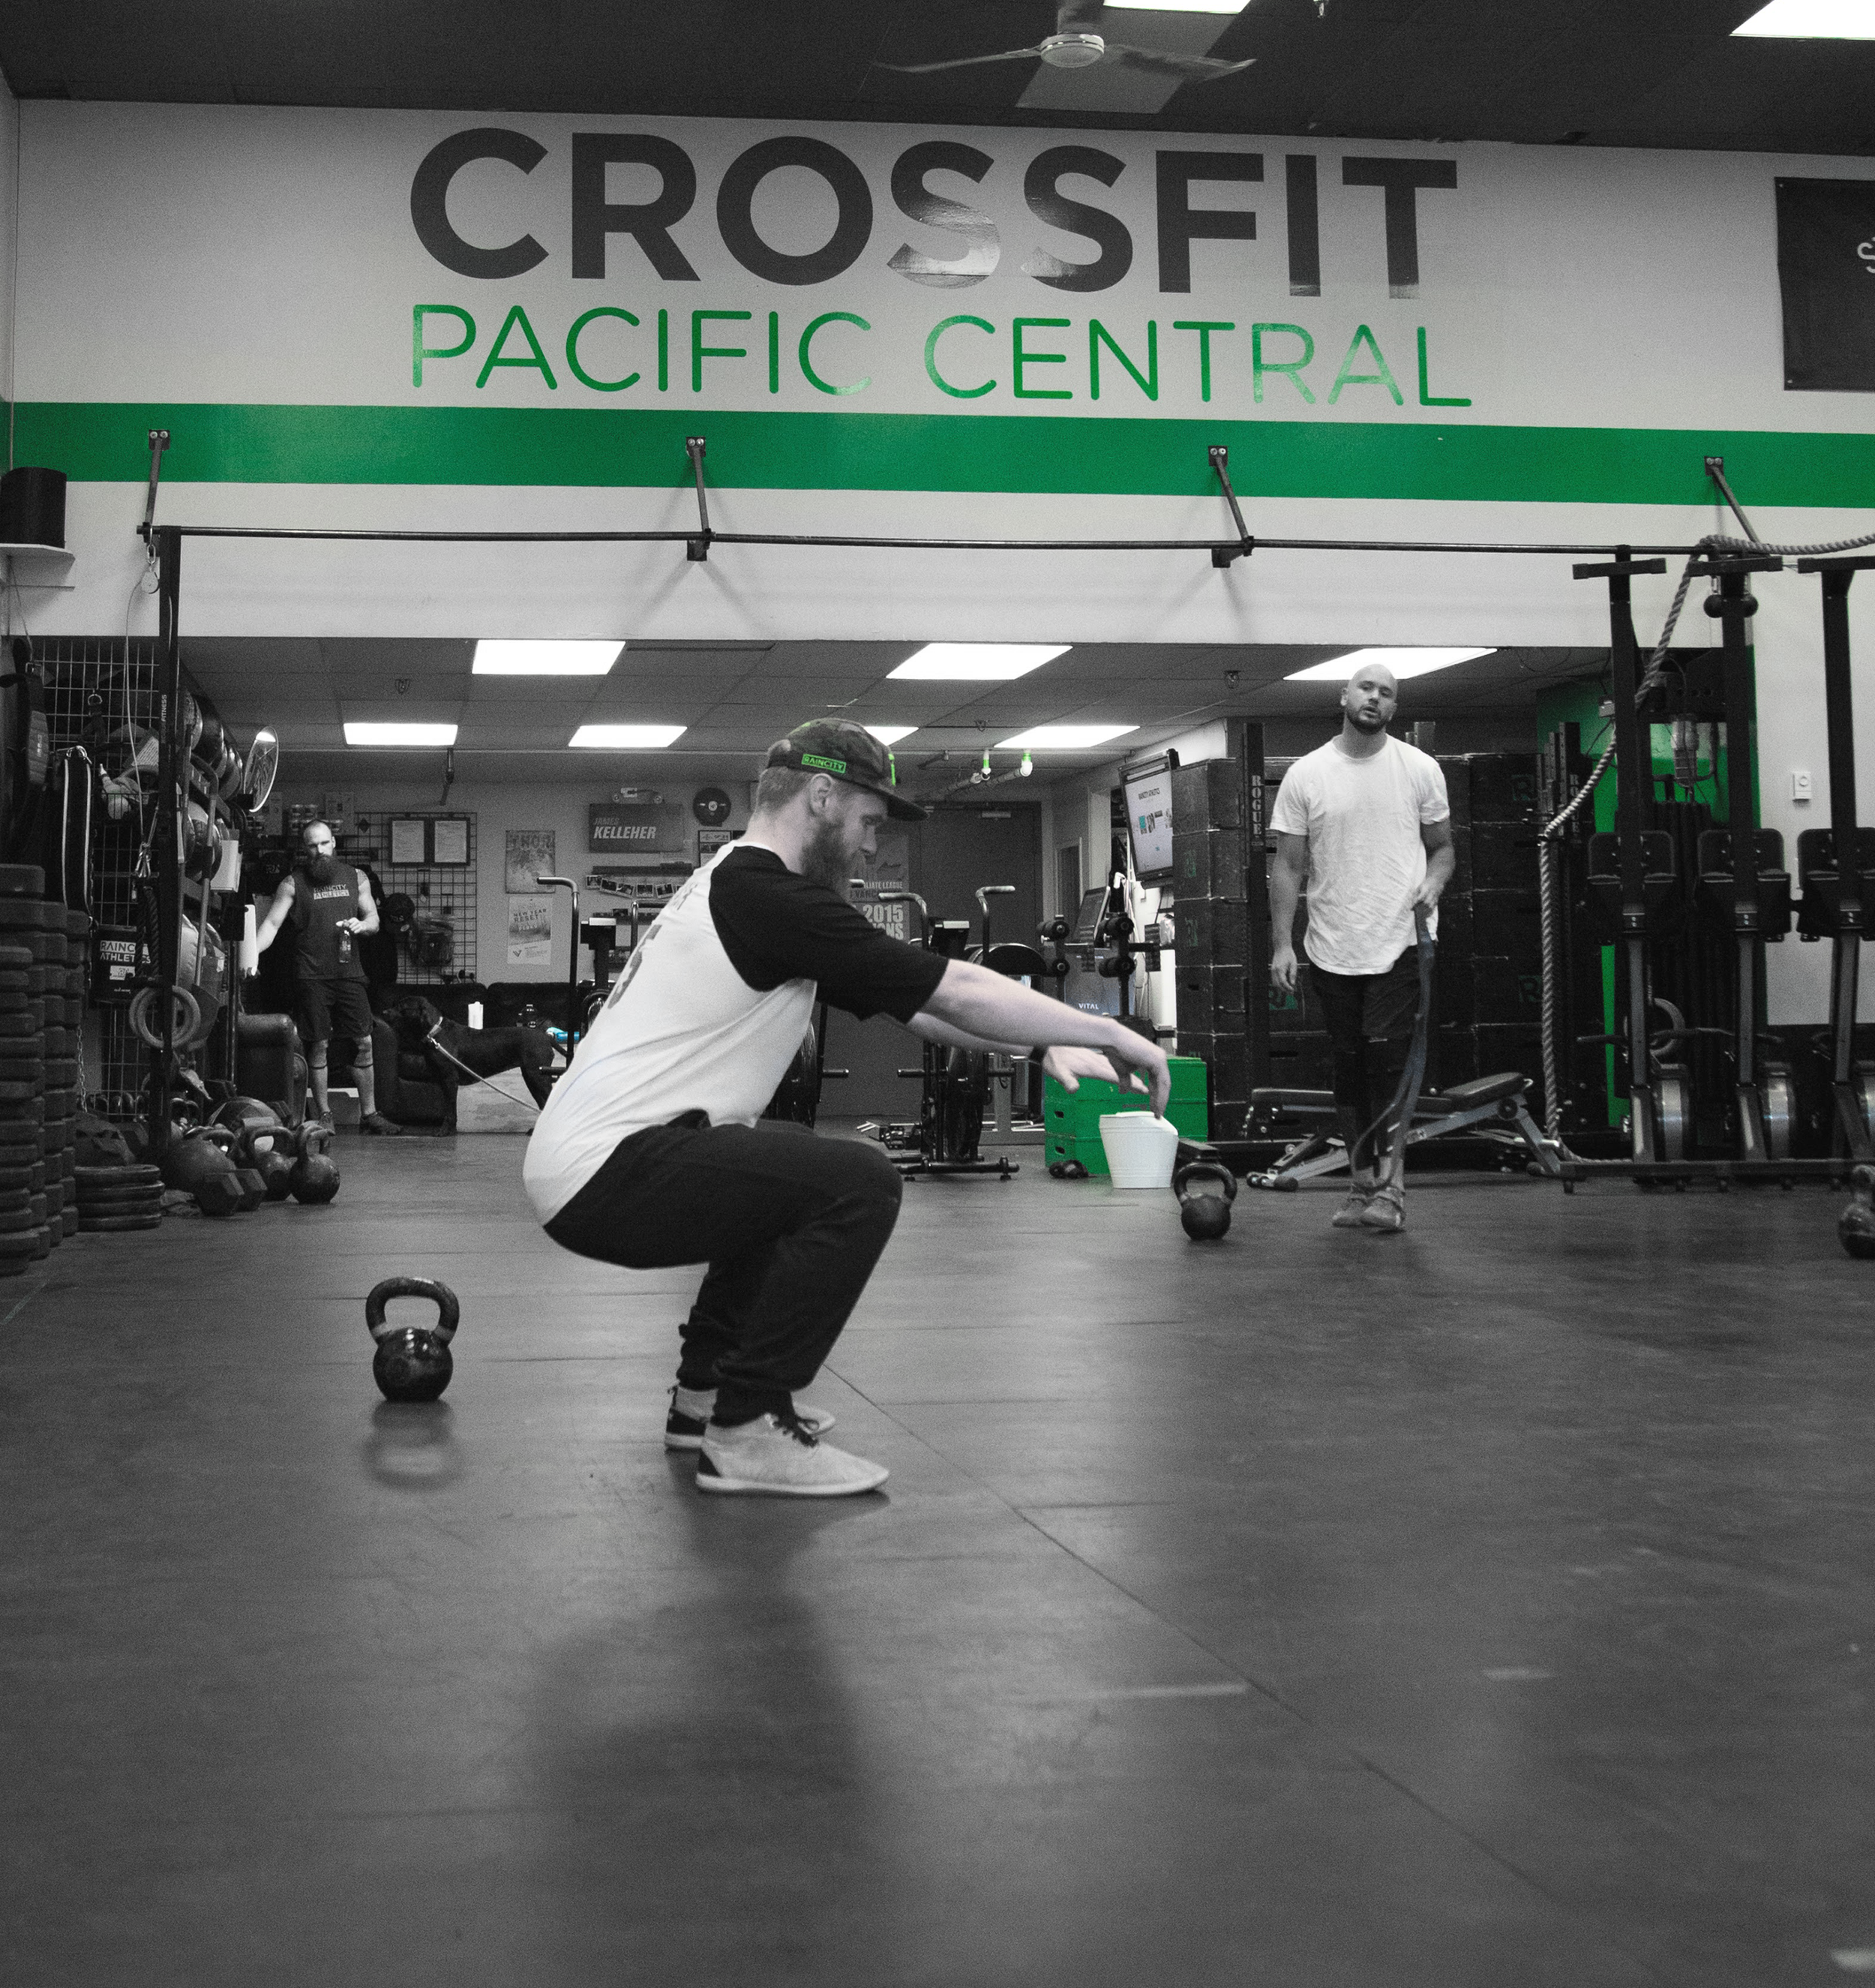 The CrossFit Pacific Central decal came off our wall over a year ago, and the front entrance sign is in the process of being replaced.